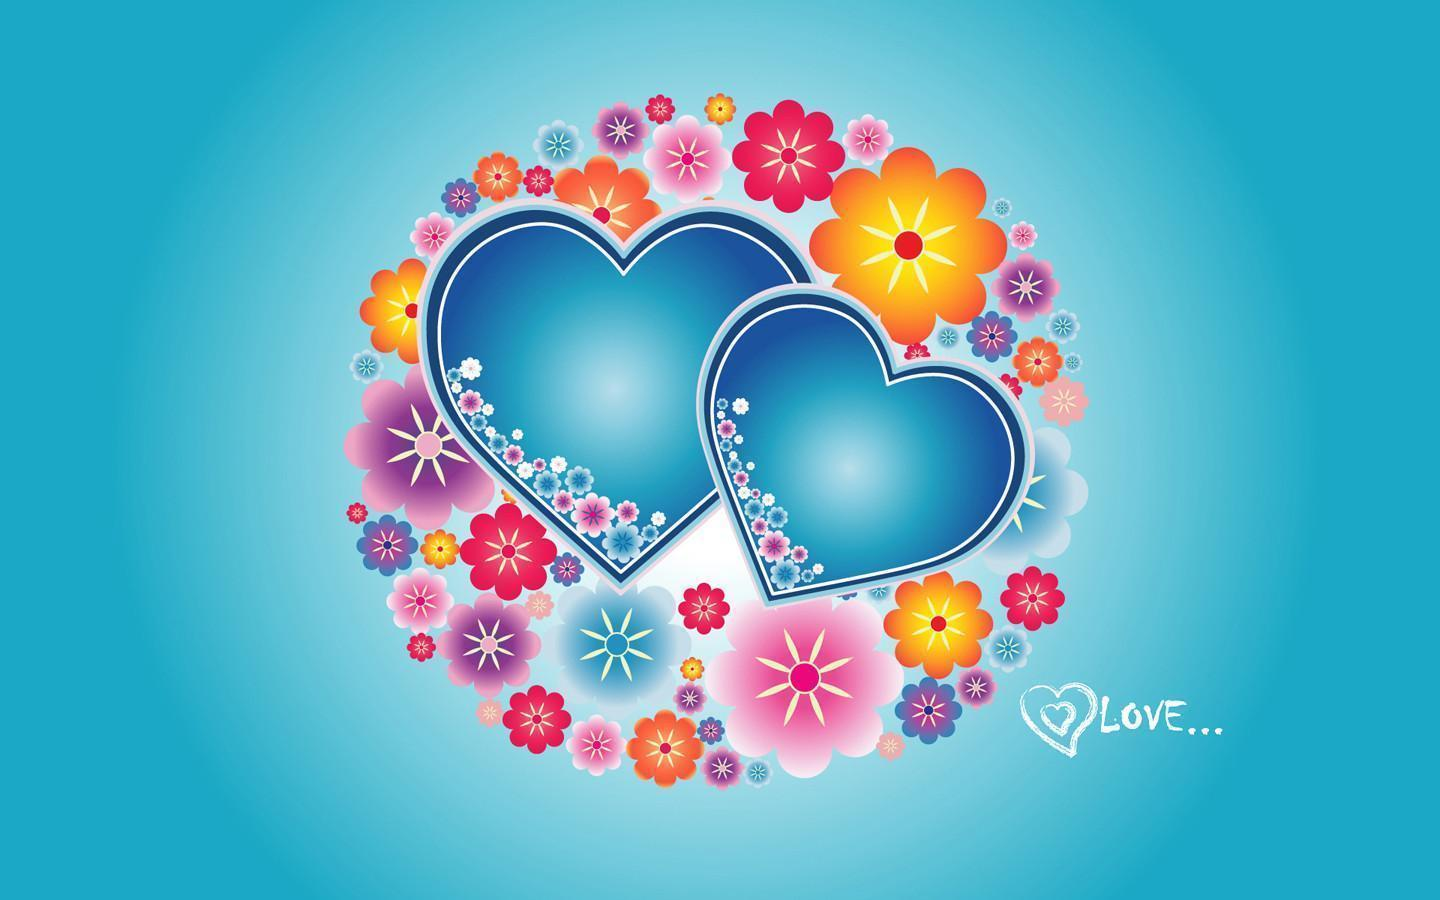 Hd Wallpaper Of Love For Laptop : Love Heart Wallpapers HD - Wallpaper cave